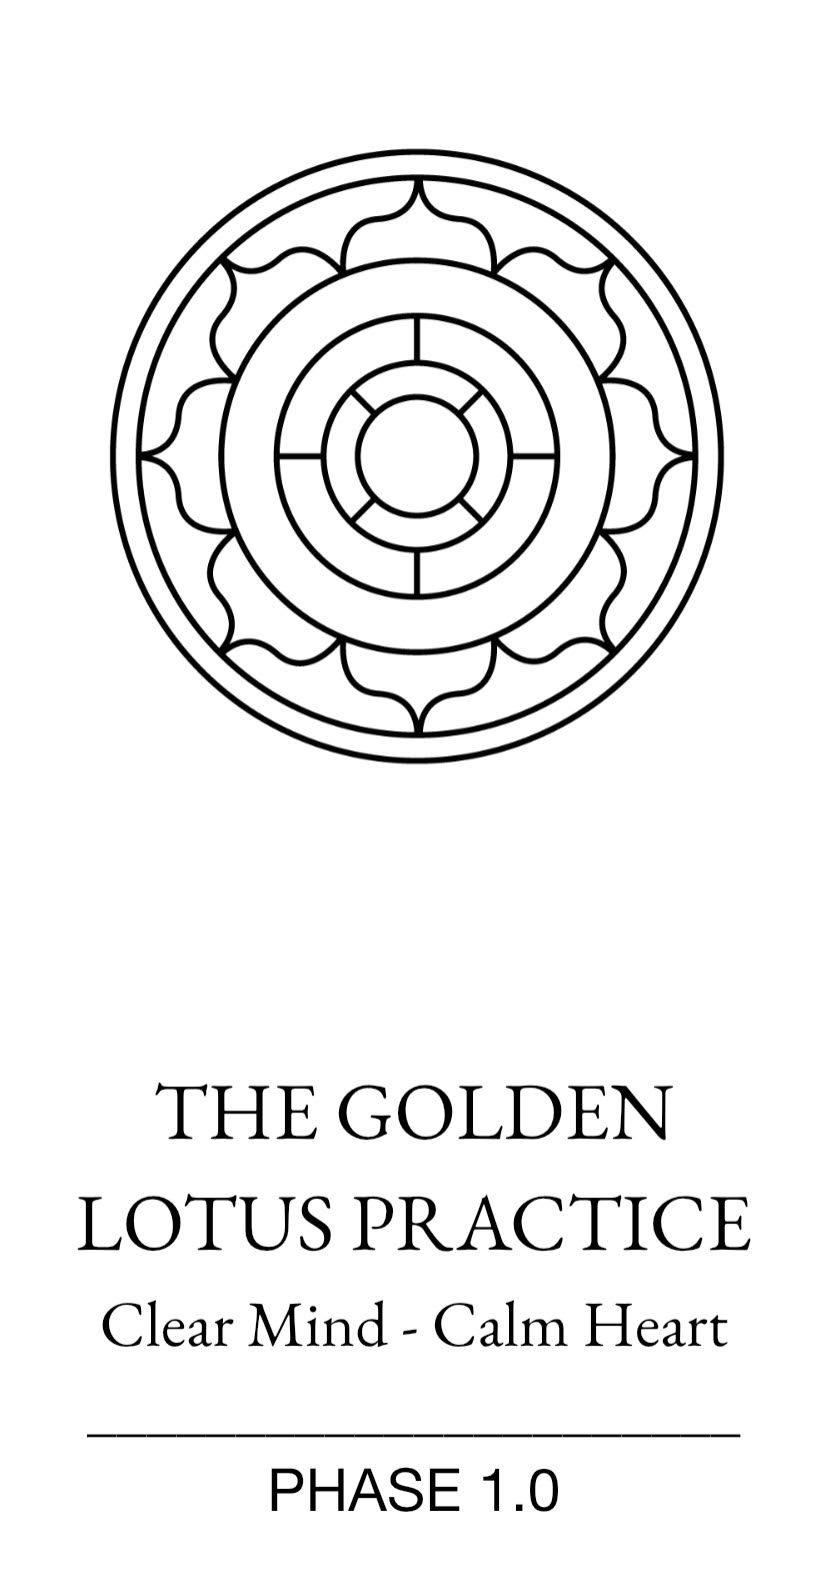 The Golden Lotus Practice Brochure Download